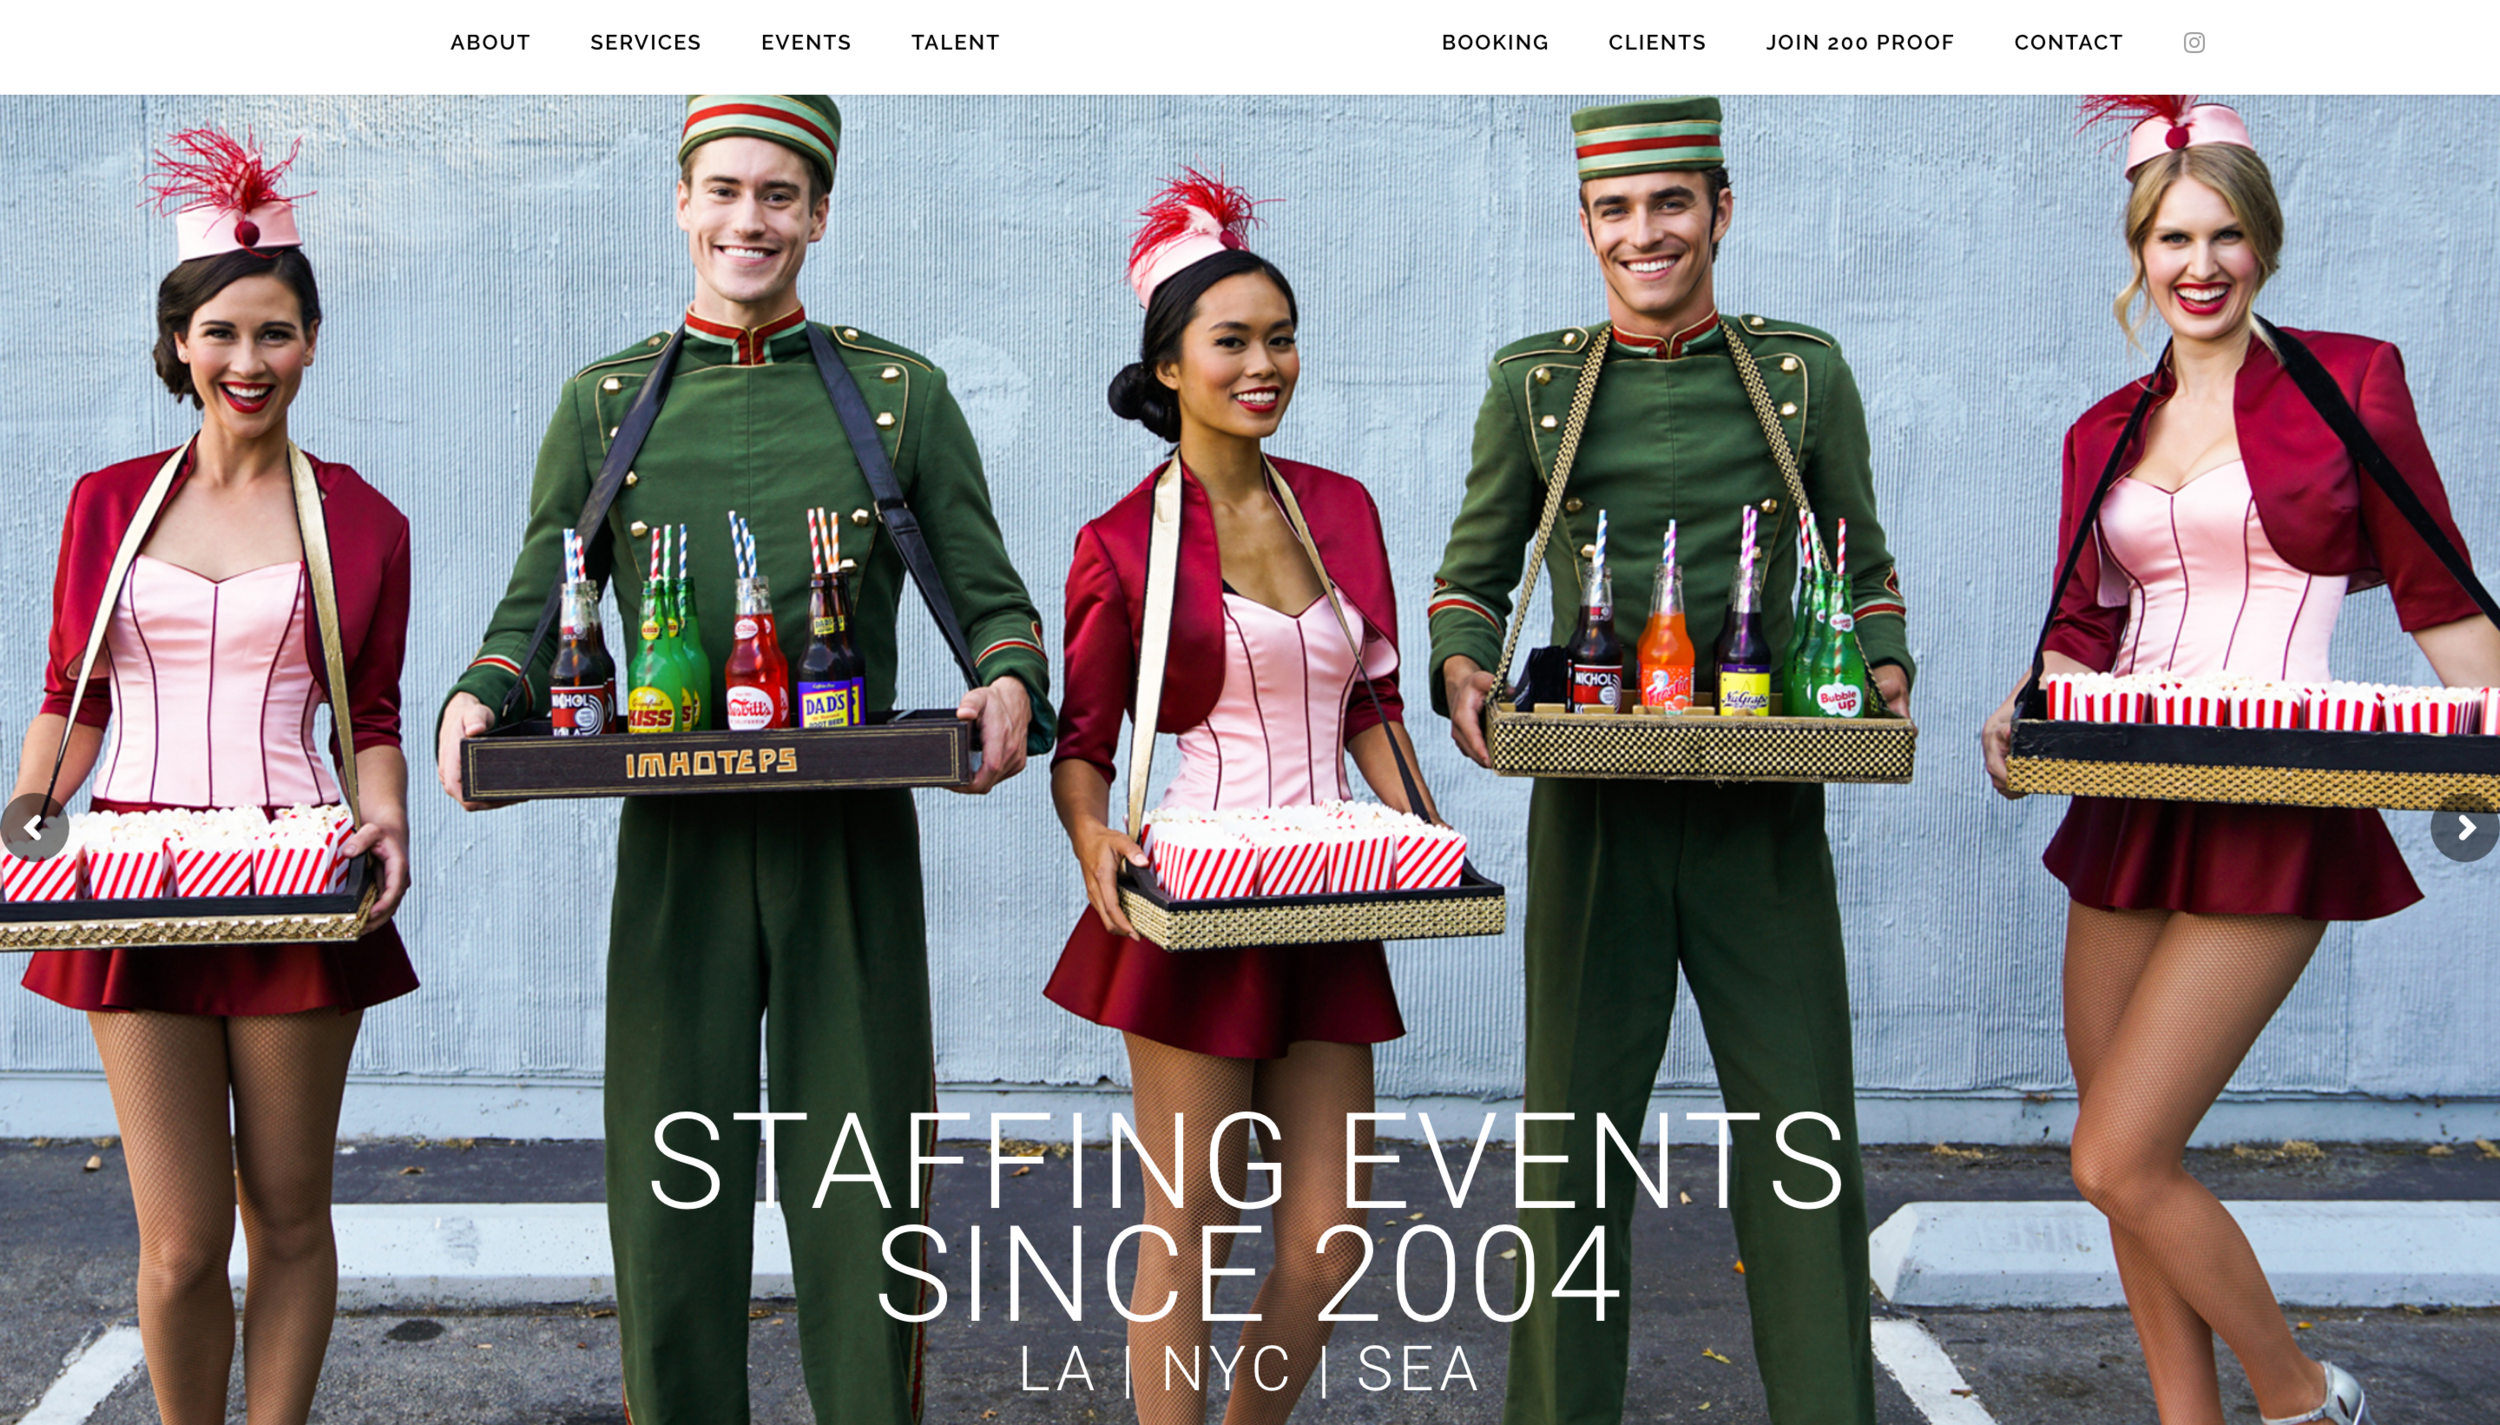 200 Proof Staffing Company Los Angeles Website  http://200proofstaffing.com/